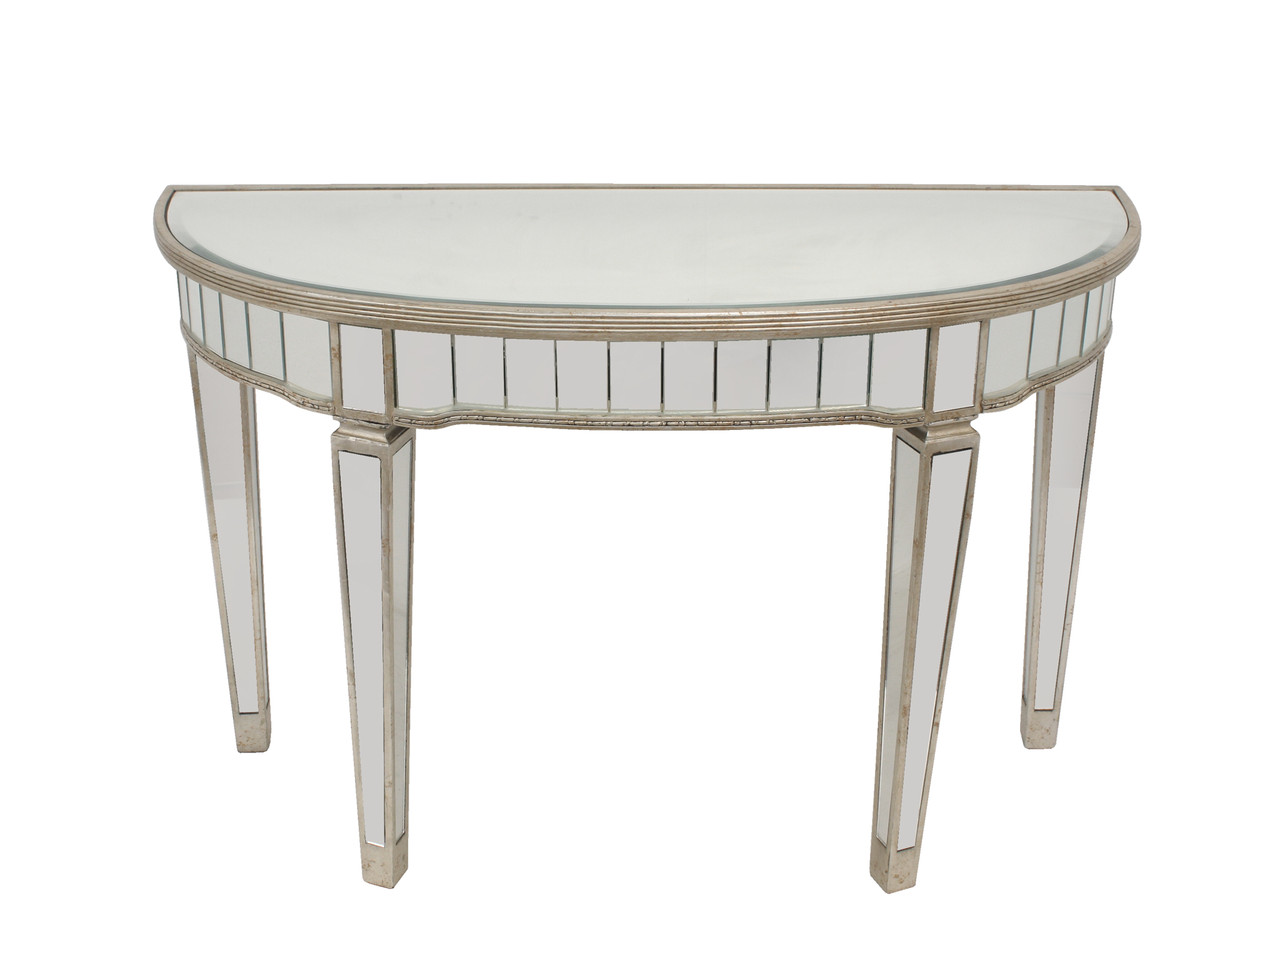 Picture of: Console Mirrored Half Circle Console Table